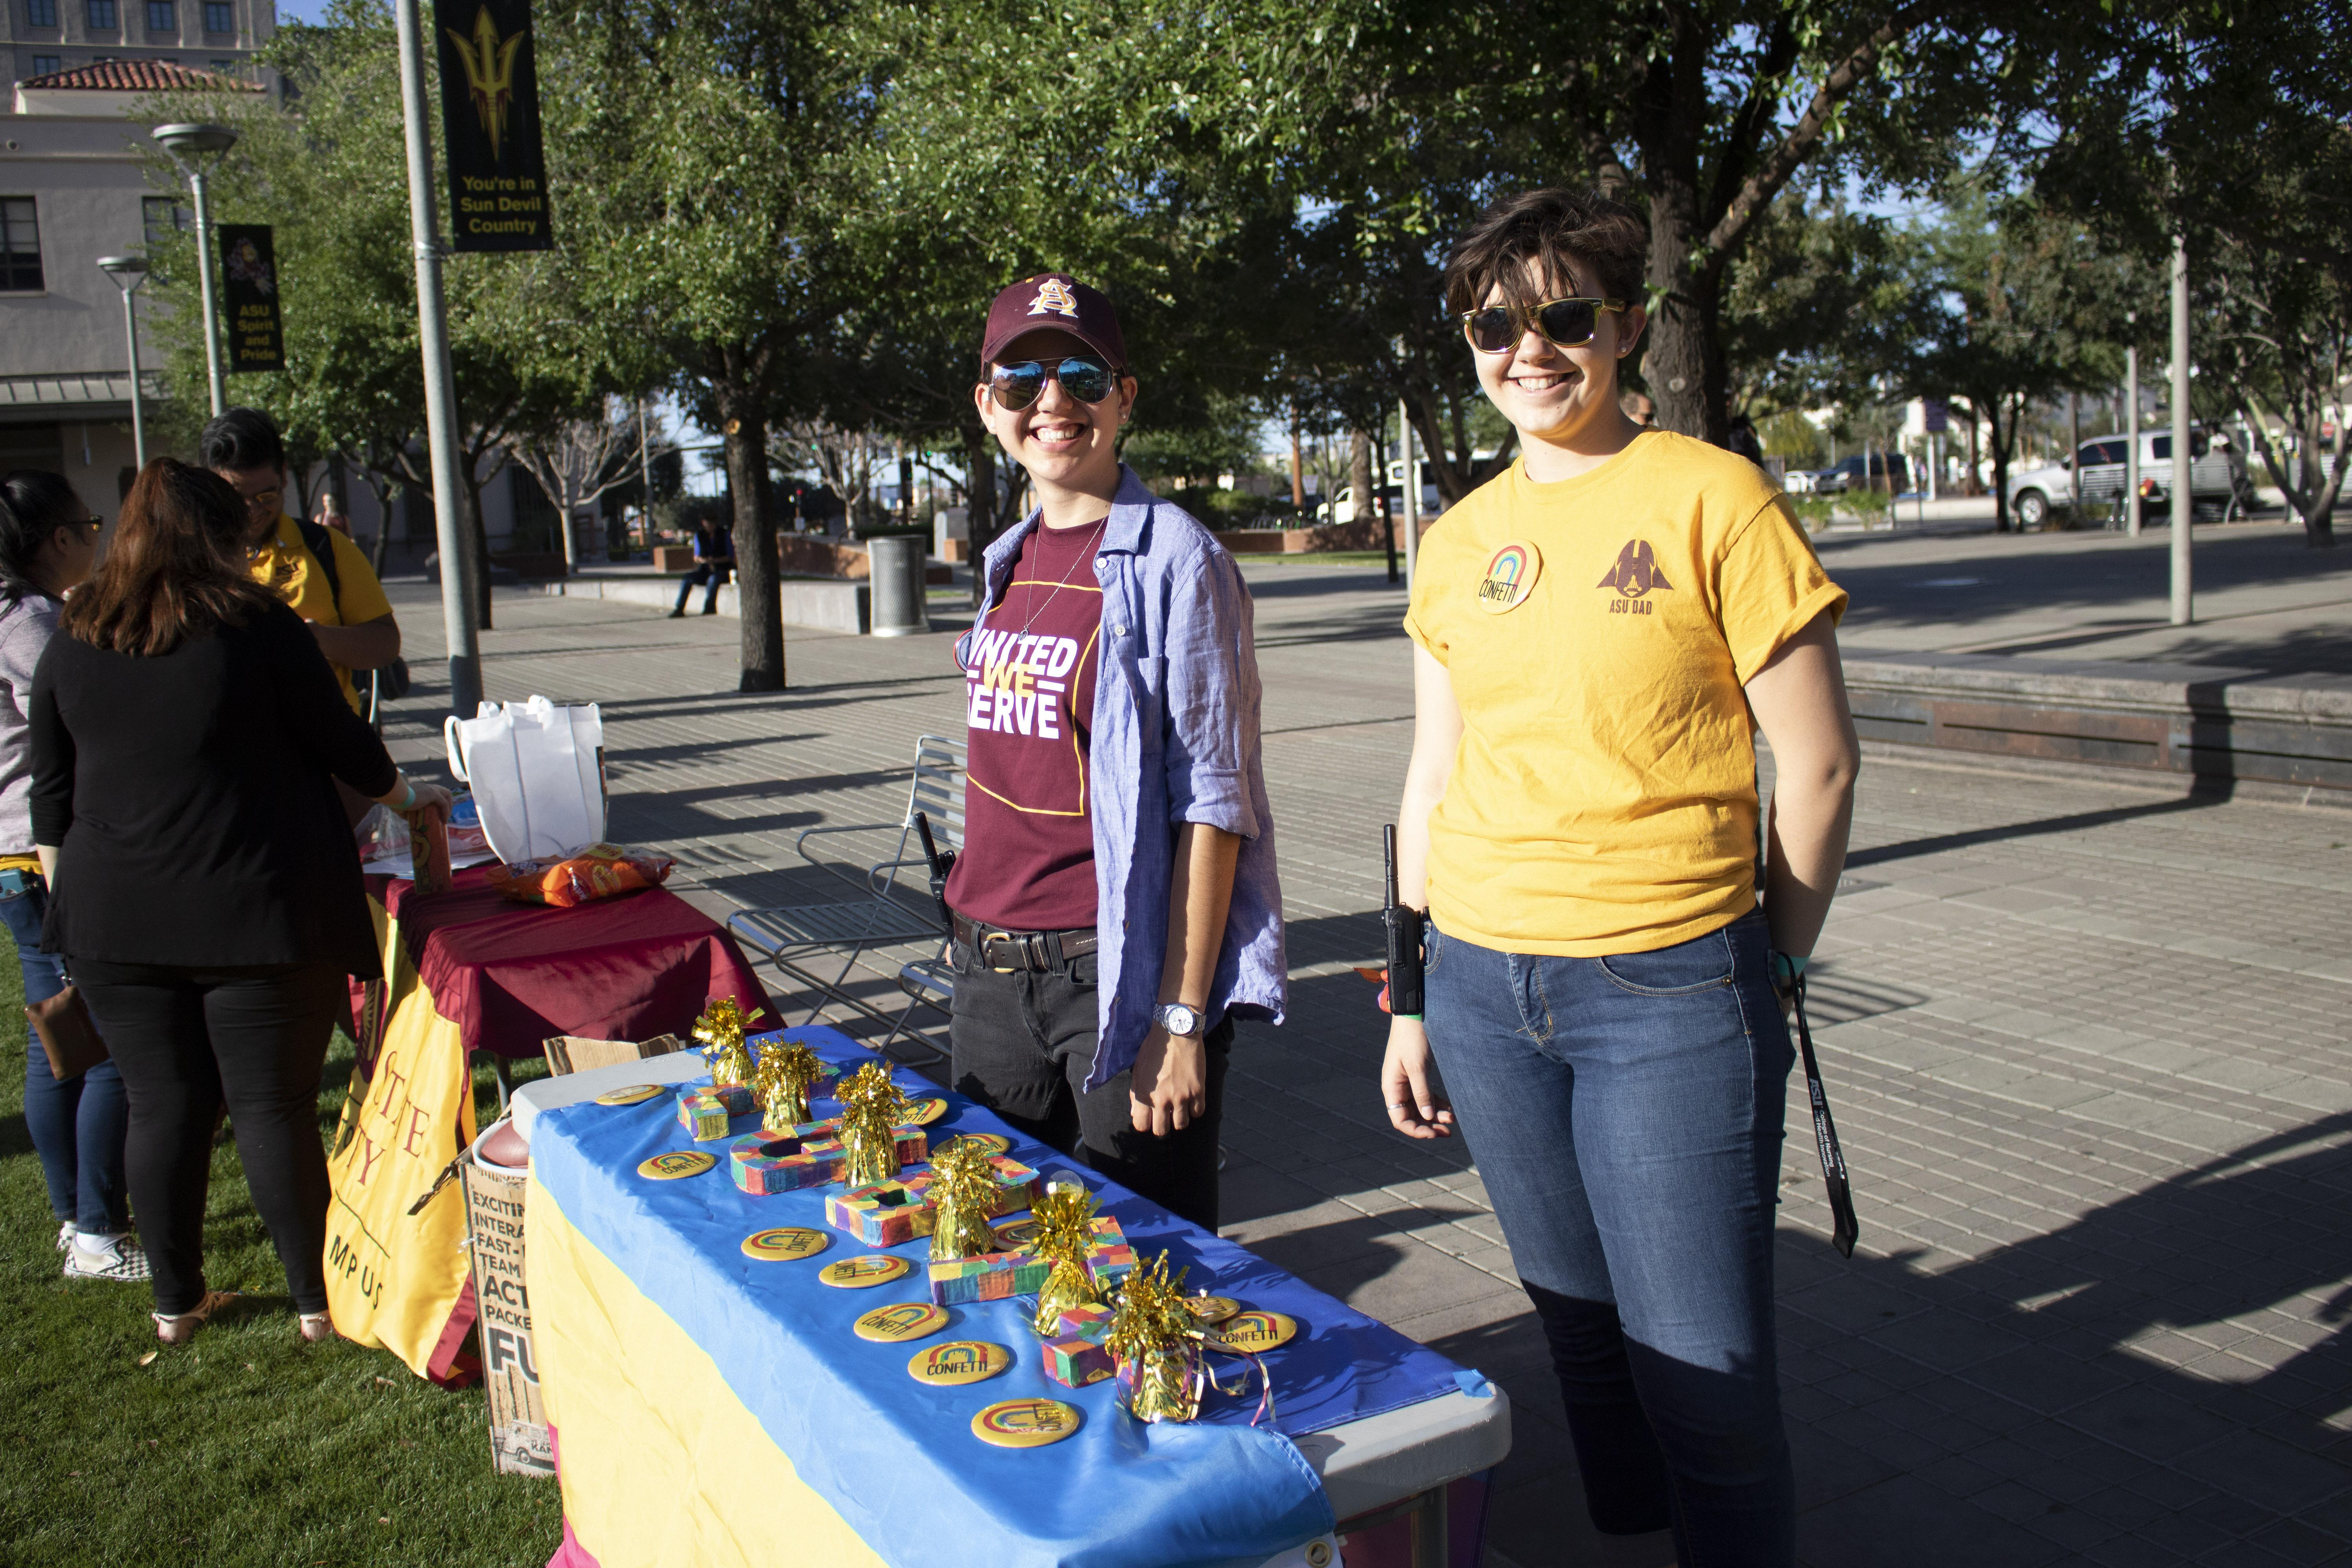 Students celebrate LGBT Pride at an ASU event